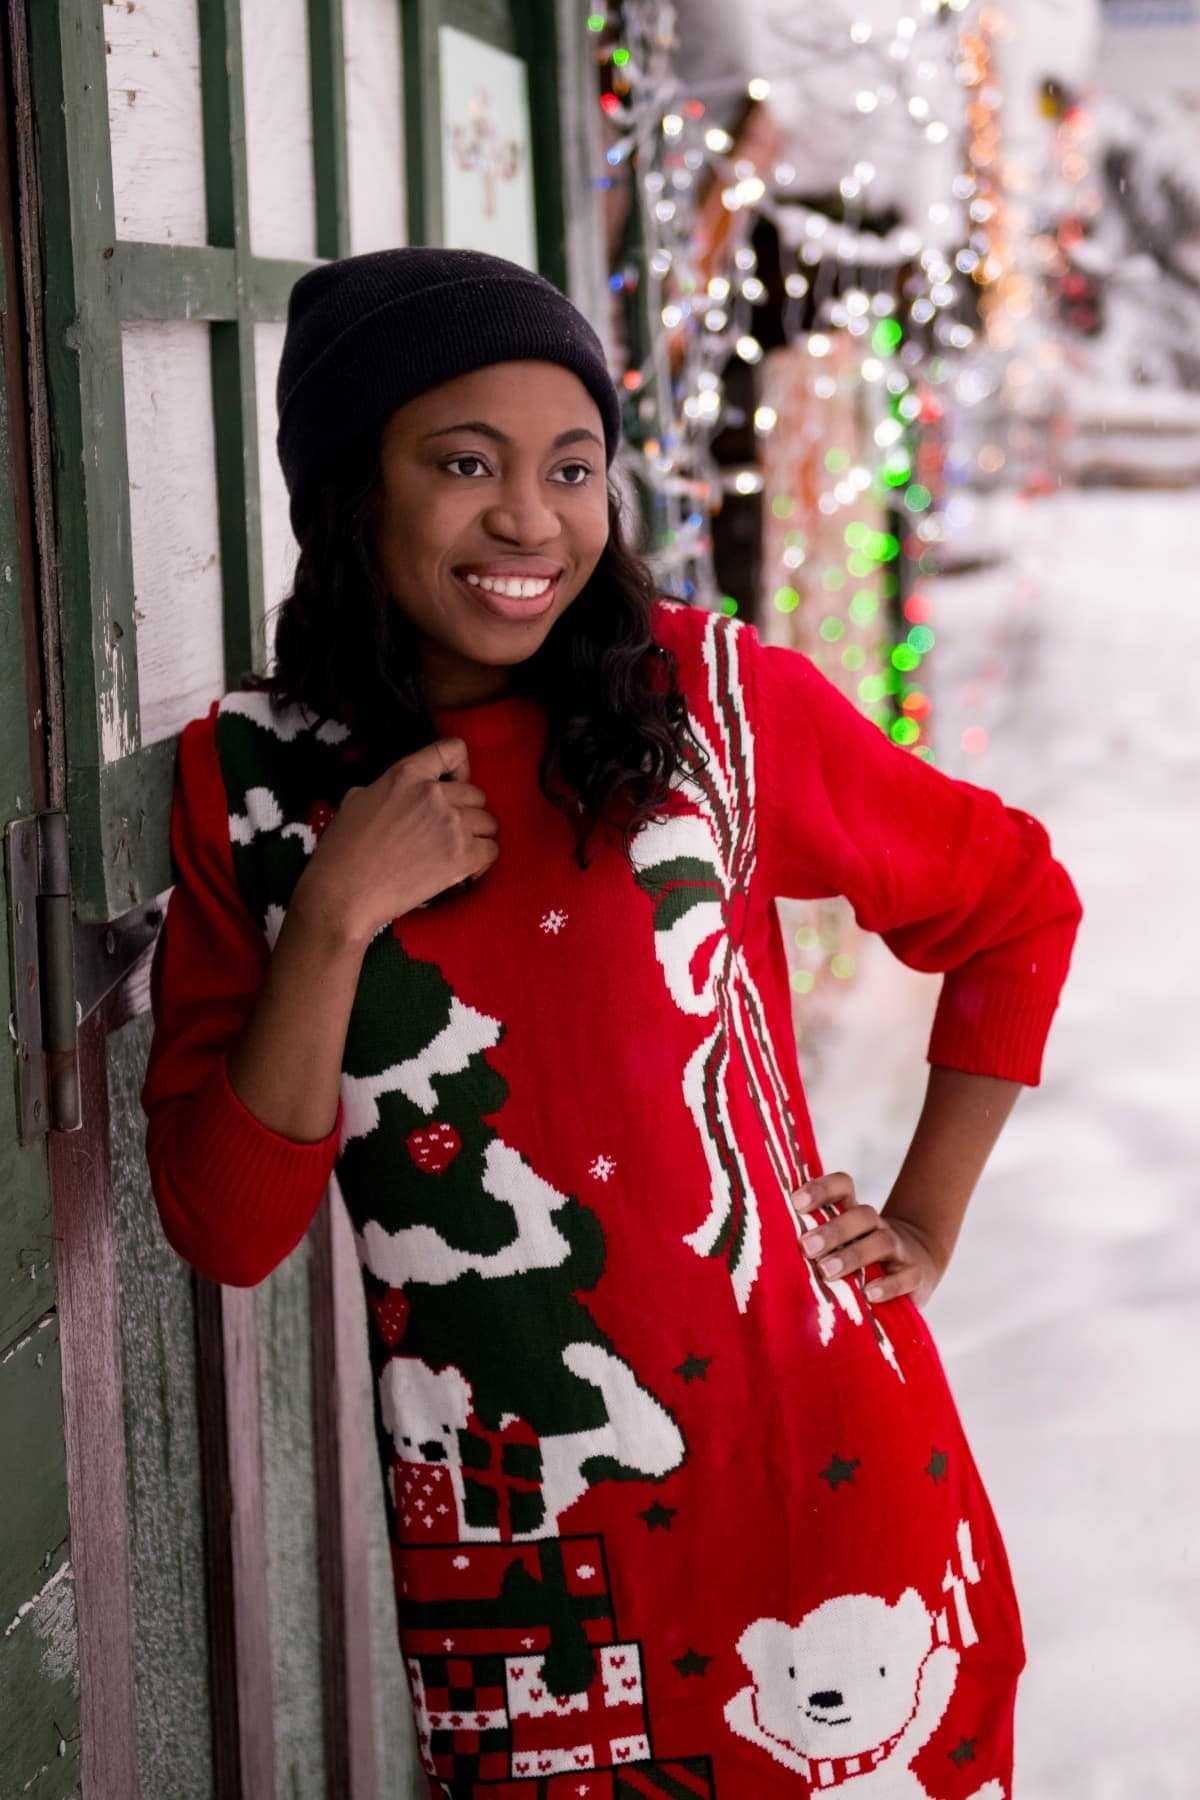 Ugly Christmas Sweater Outfit   Having so much fun in the snow rocking this ugly Christmas sweater dress. All about staying warm and comfortable this season! #uglysweater #xmassweater #sweaterdress